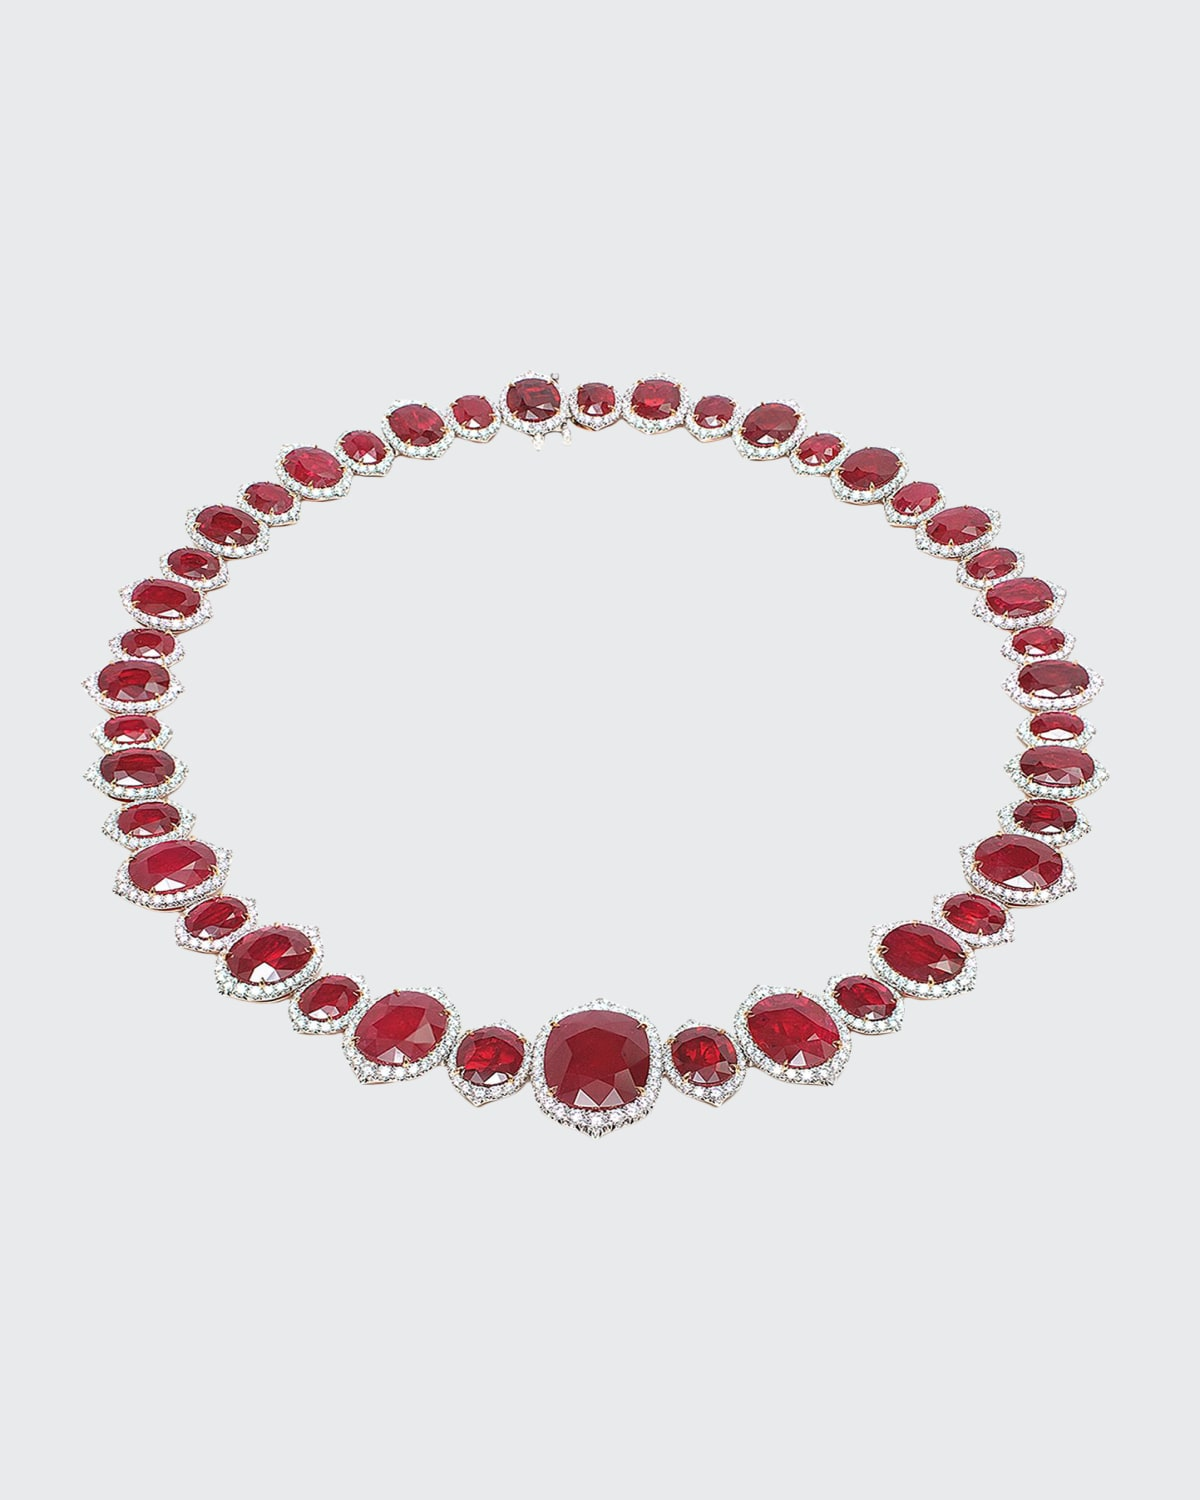 Oval Mozambique Ruby and Diamond Necklace